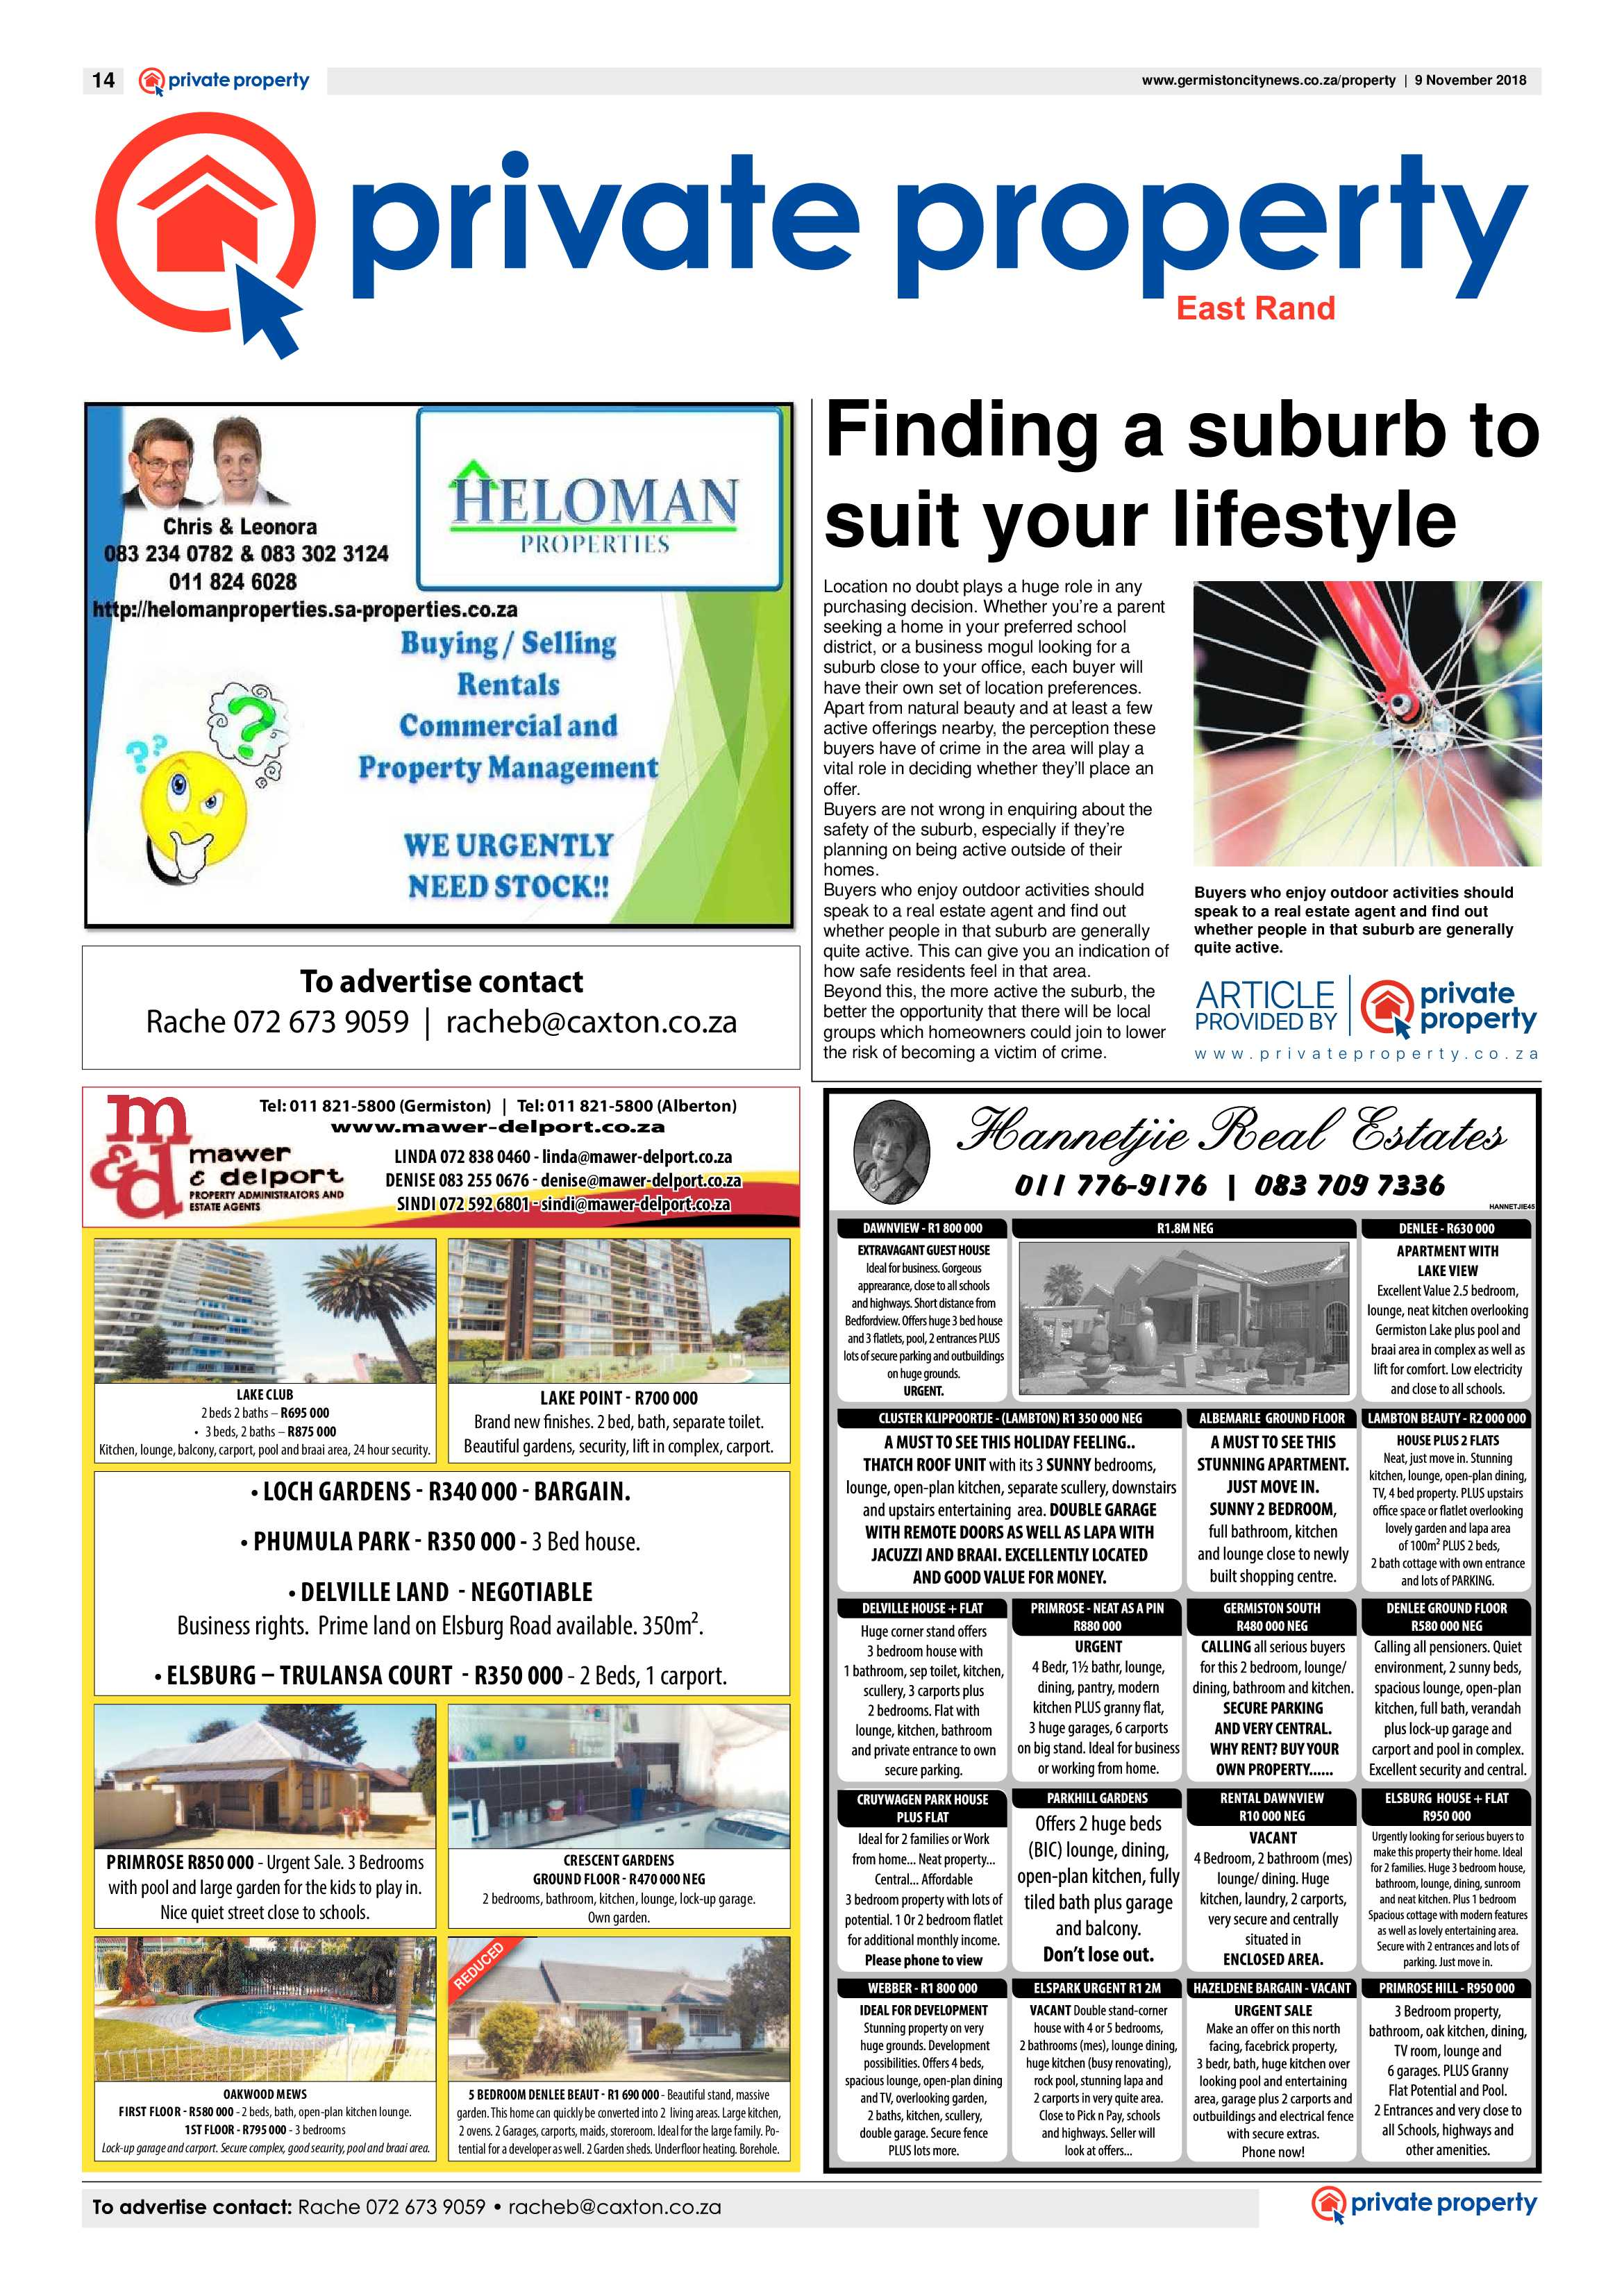 germiston-city-news-07-november-2018-epapers-page-14